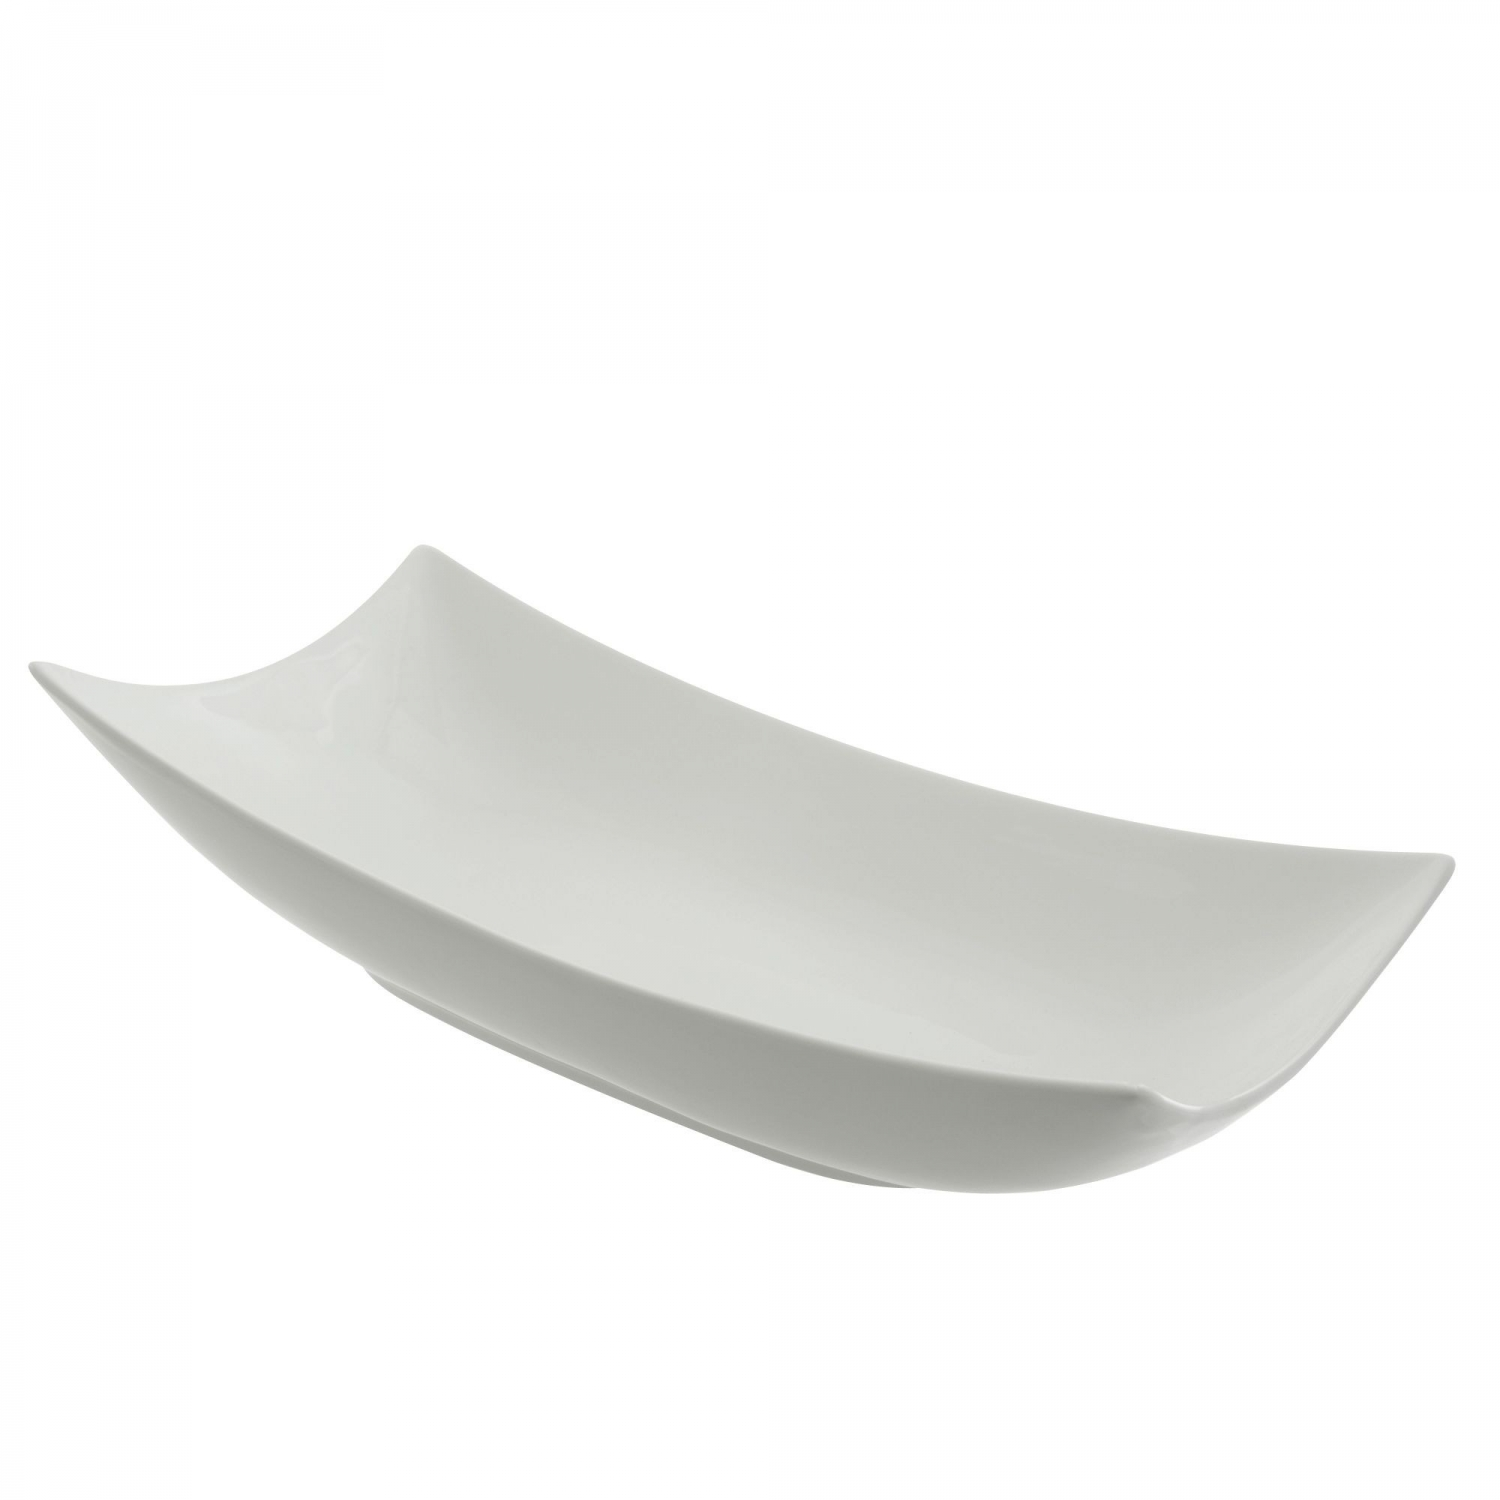 "10 Strawberry Street OSLO-21CPPLTR Oslo Coupe Rolled Edge Platter 21"" x 10-3/8"""